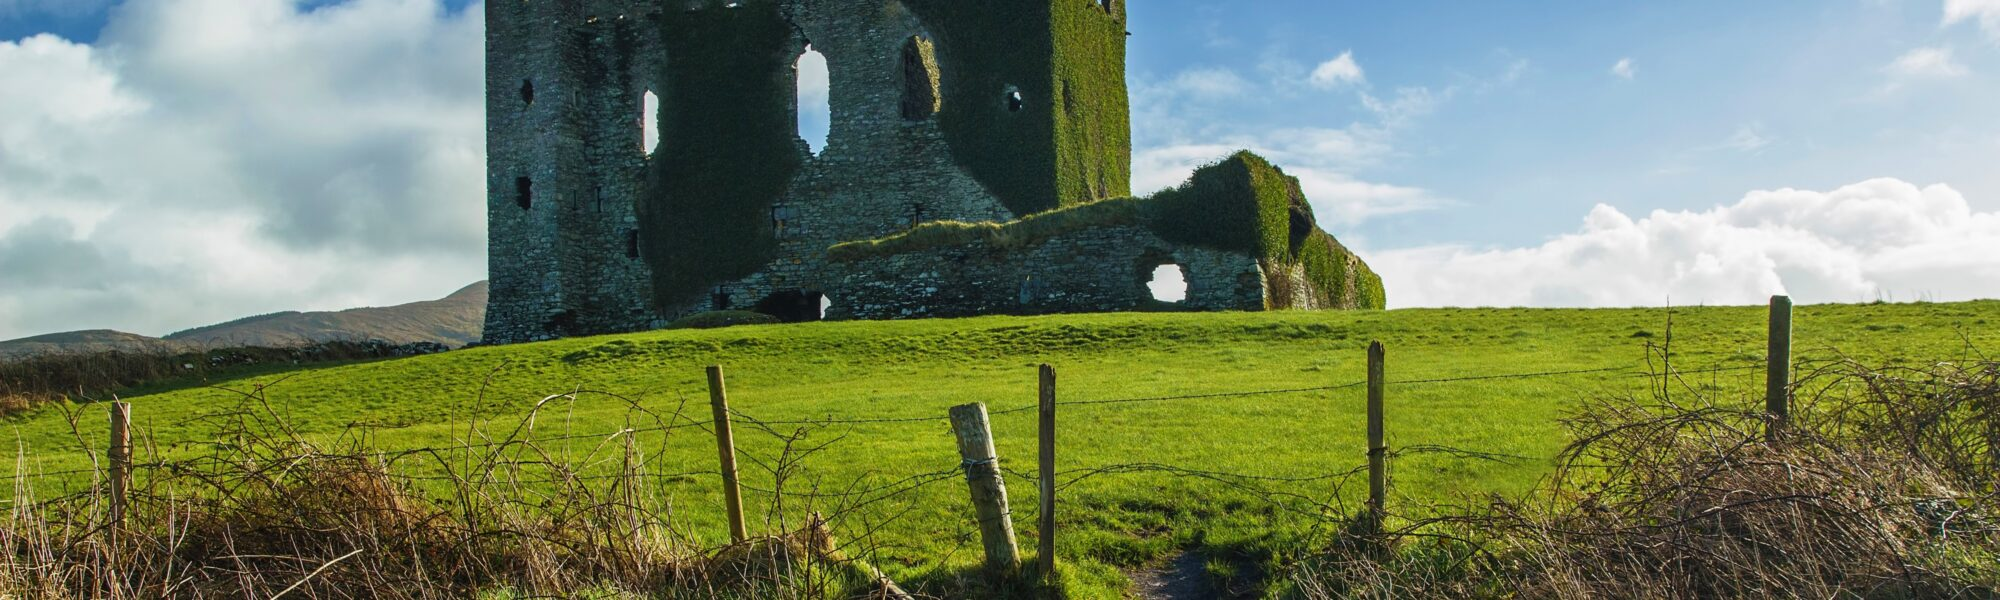 Ballycarbery castle - © Atmosphere